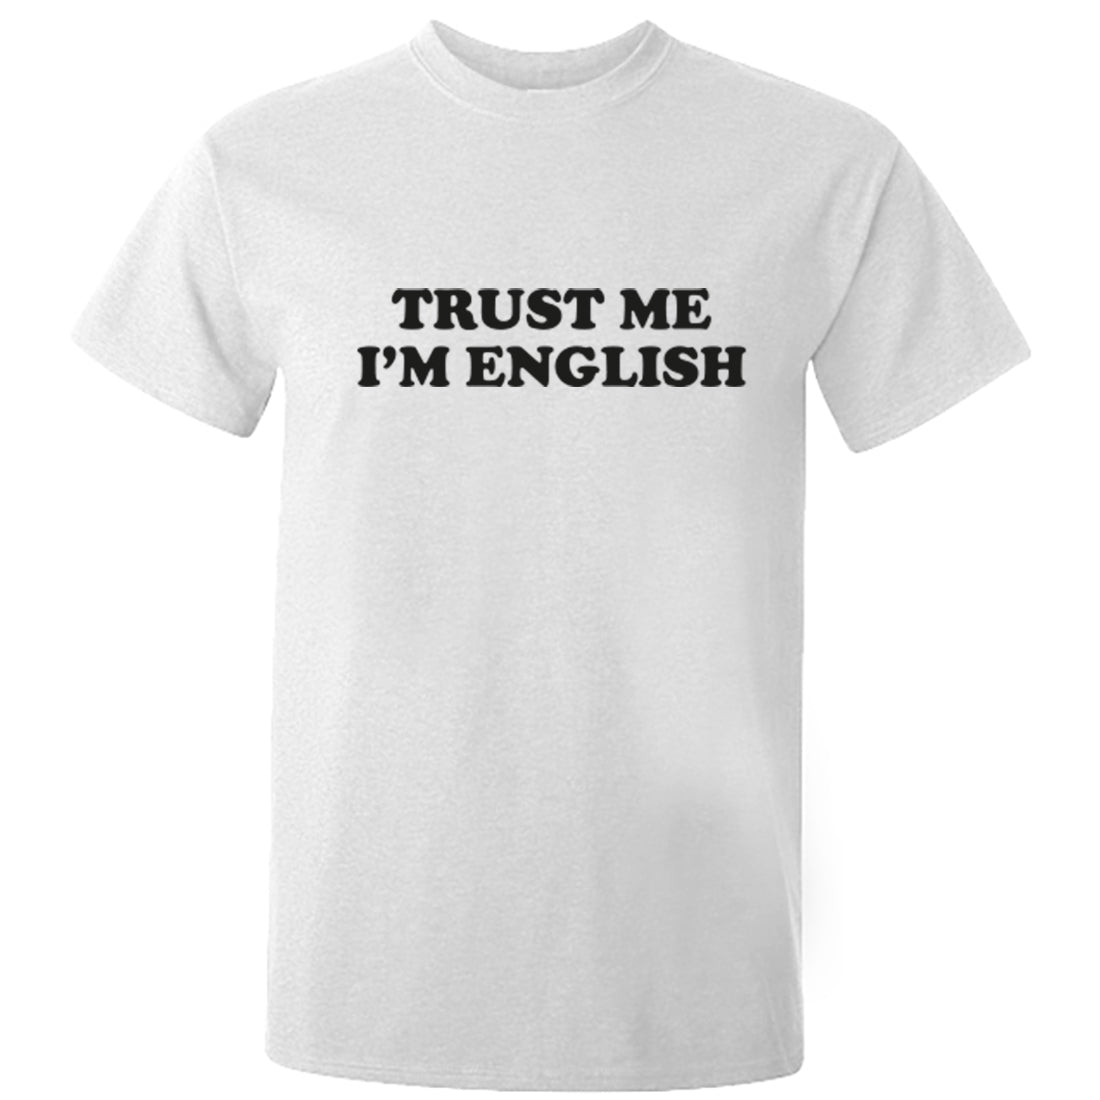 Trust Me I'm English Unisex Fit T-Shirt K1990 - Illustrated Identity Ltd.